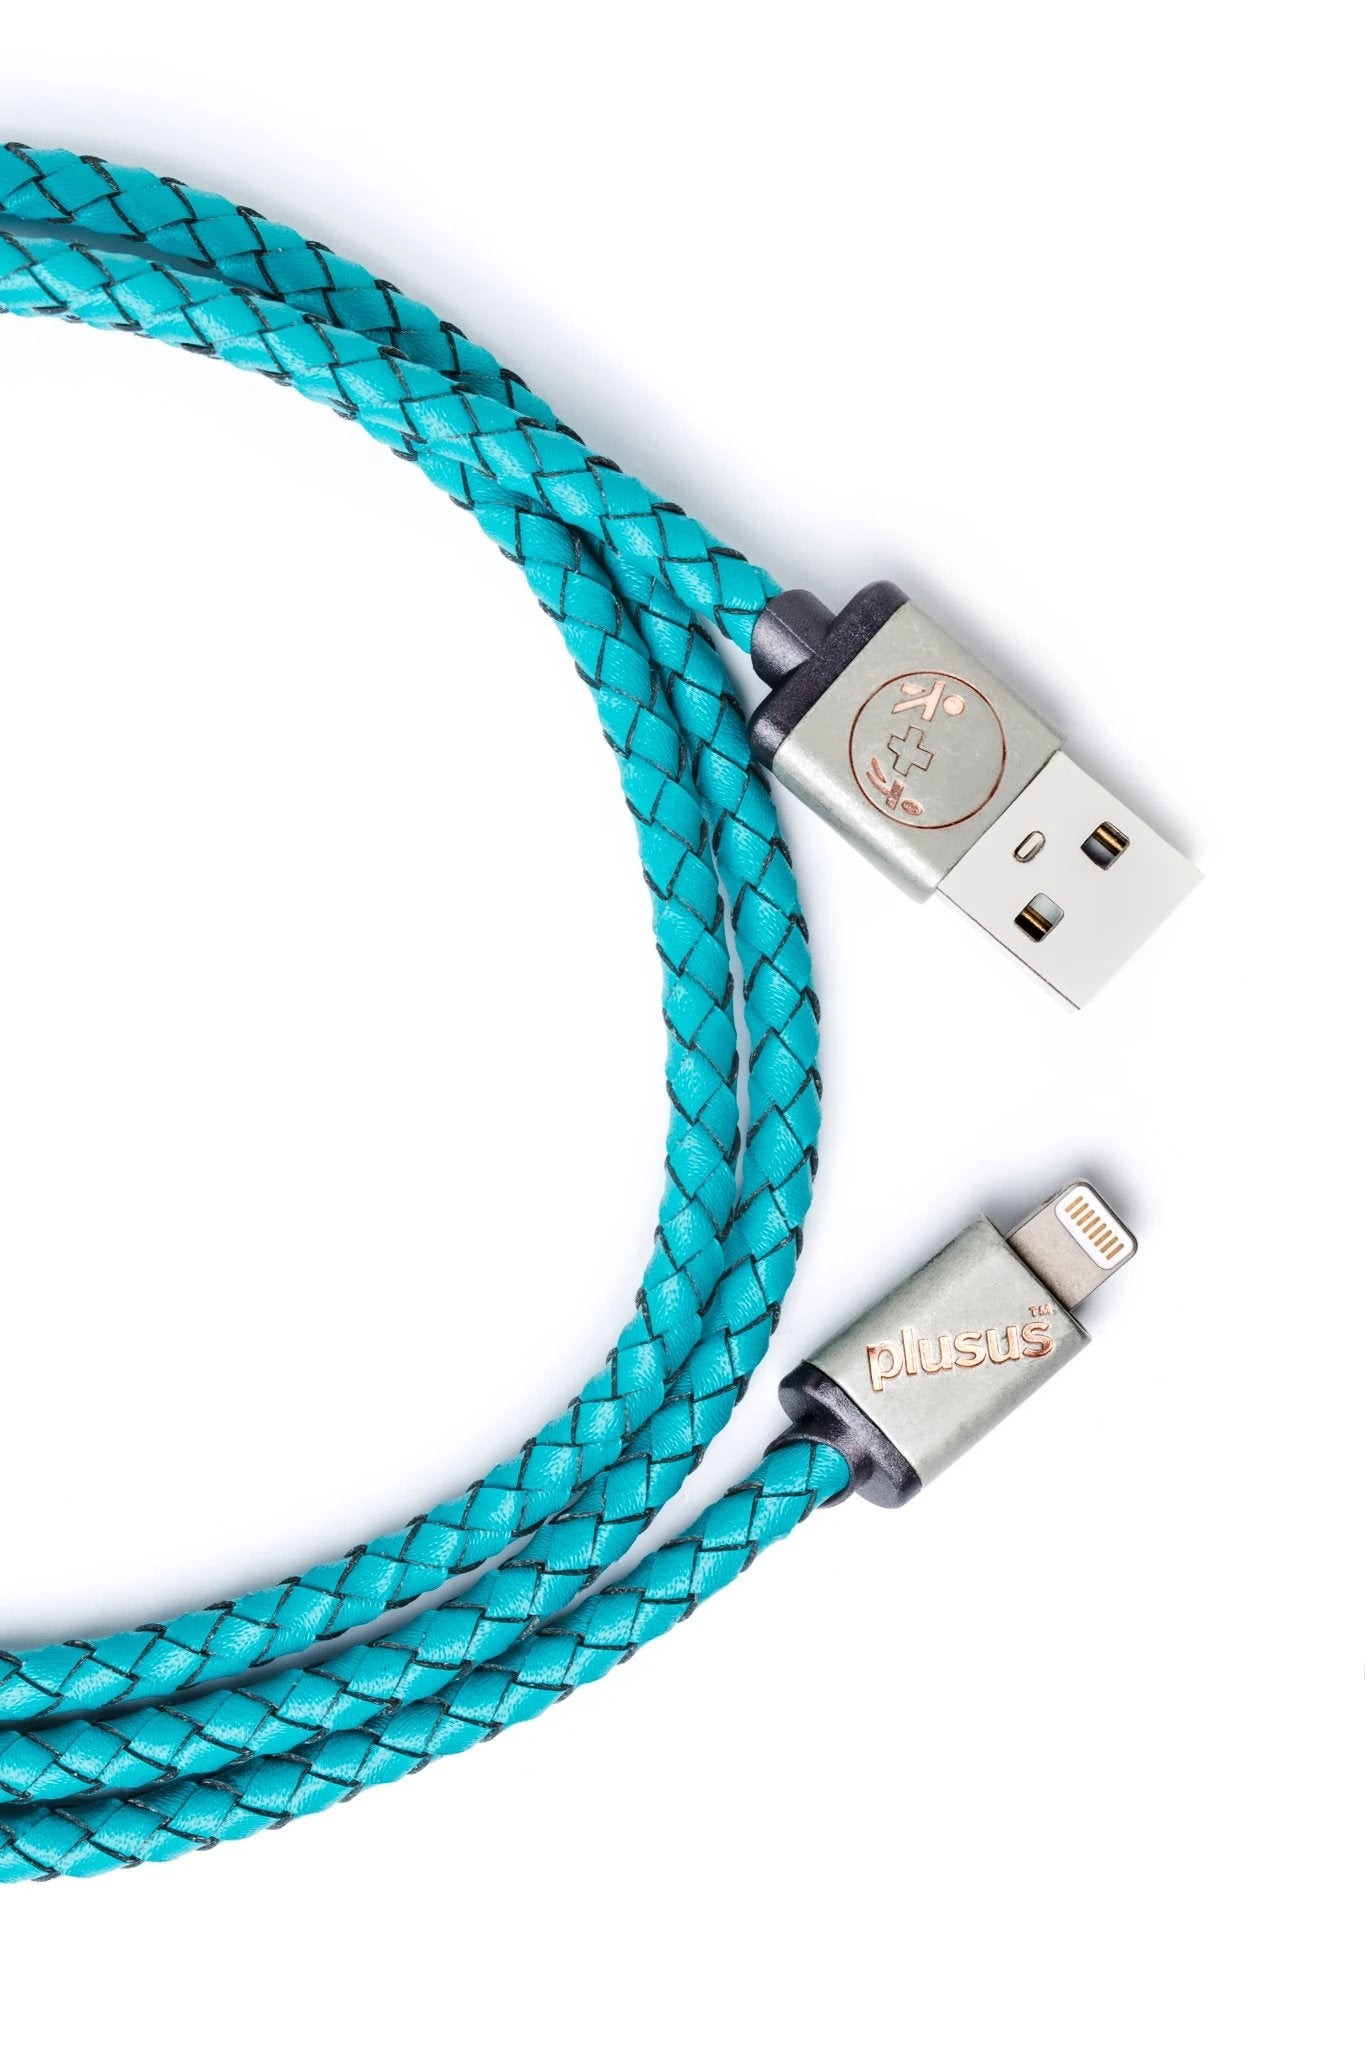 Lifestar Premium - Cross Turquoise -Apple MFi Certified Lightning